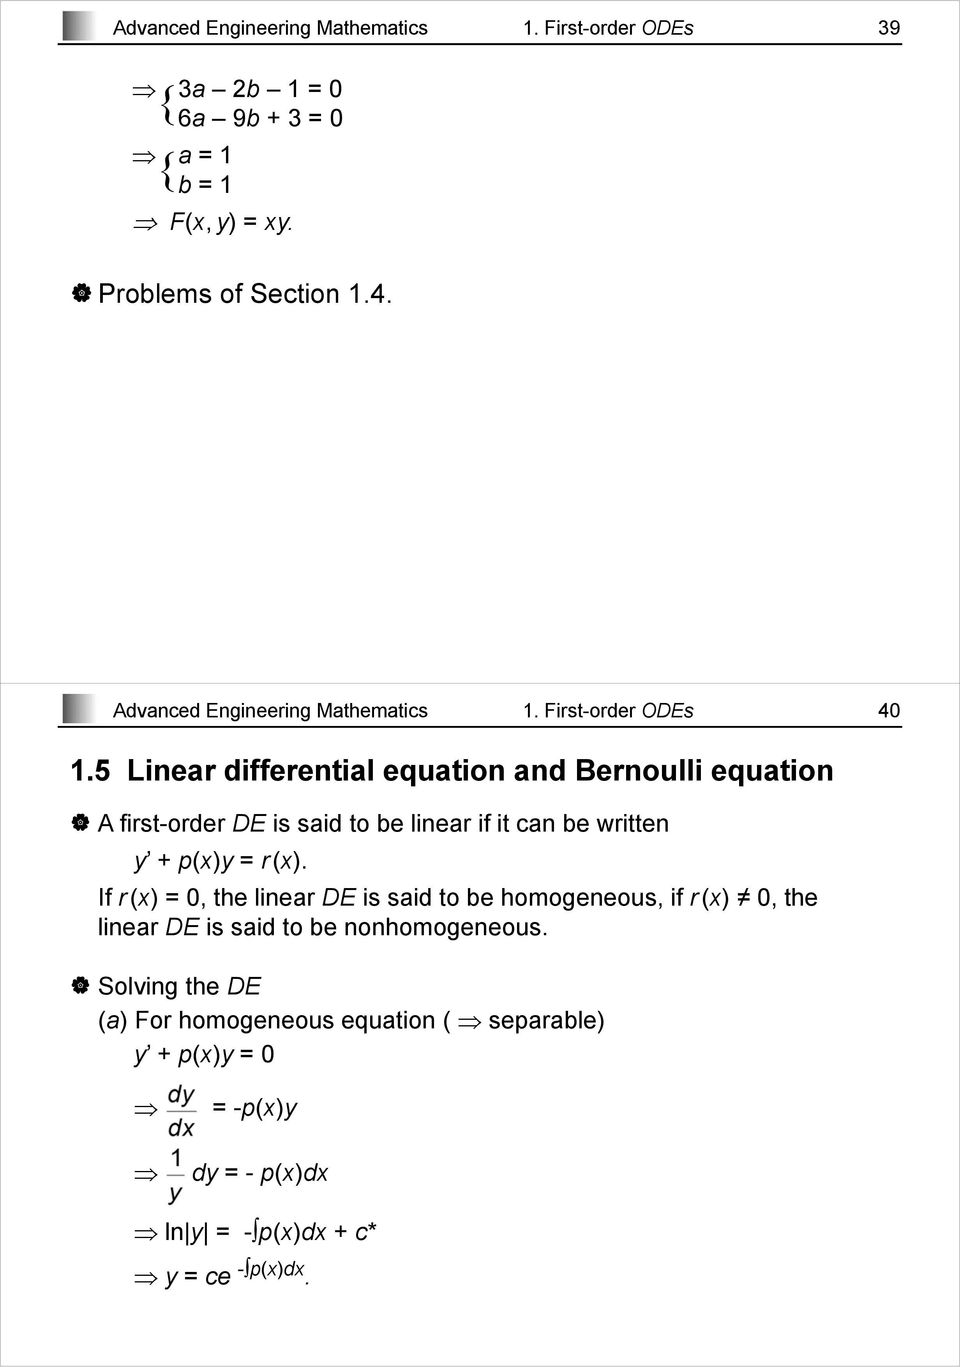 5 Linear differential equation and Bernoulli equation A first-order DE is said to be linear if it can be written y + p(x)y = r(x).